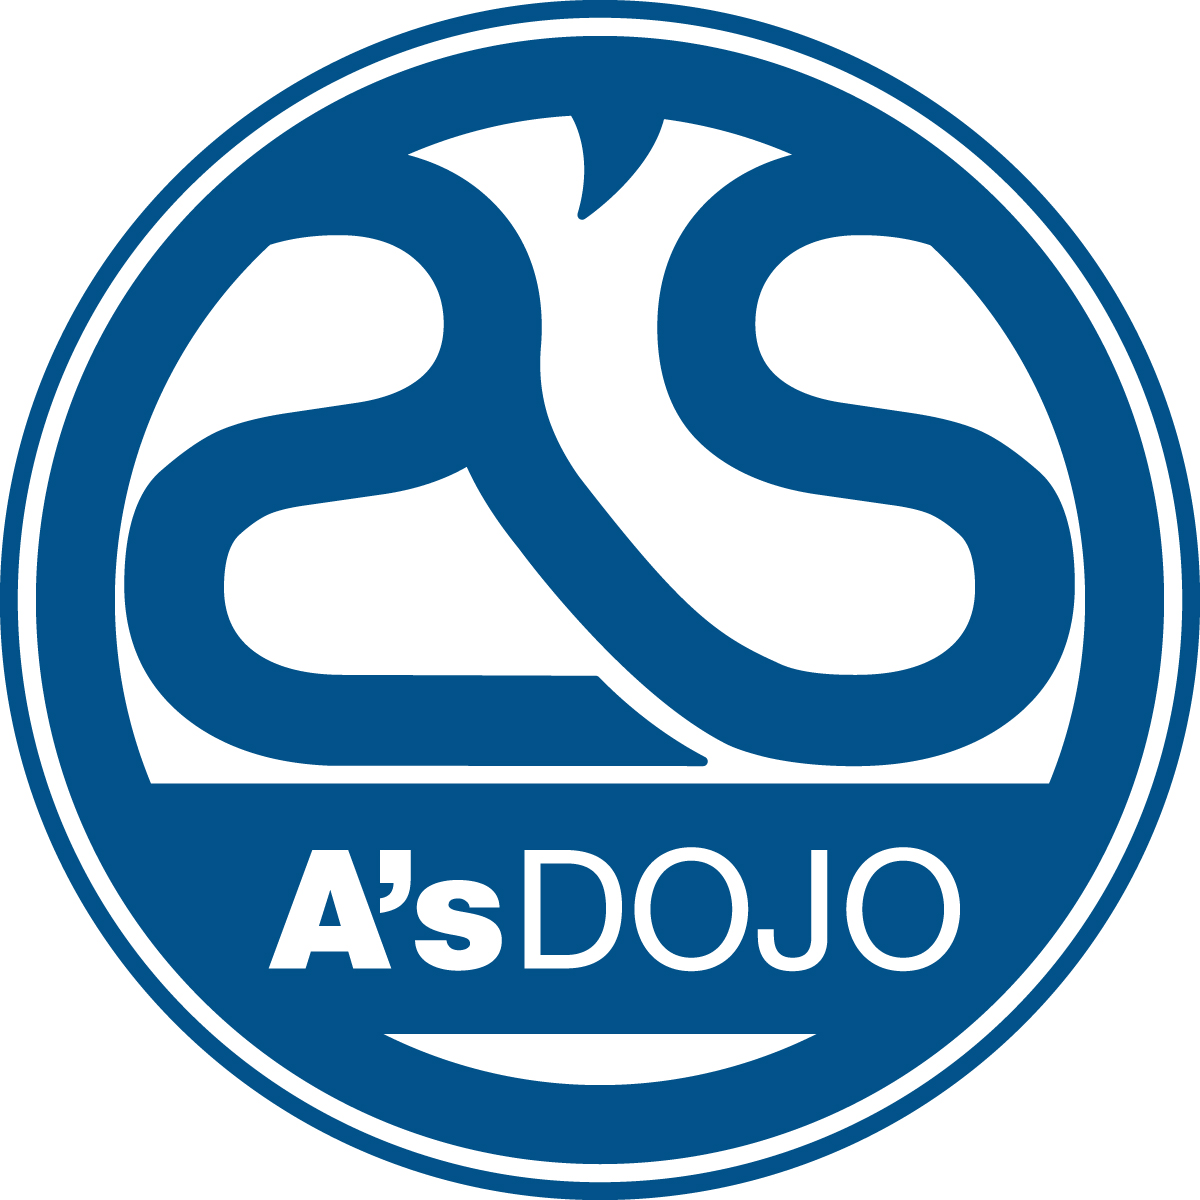 A's Dojo Mixed Martial Arts Academy